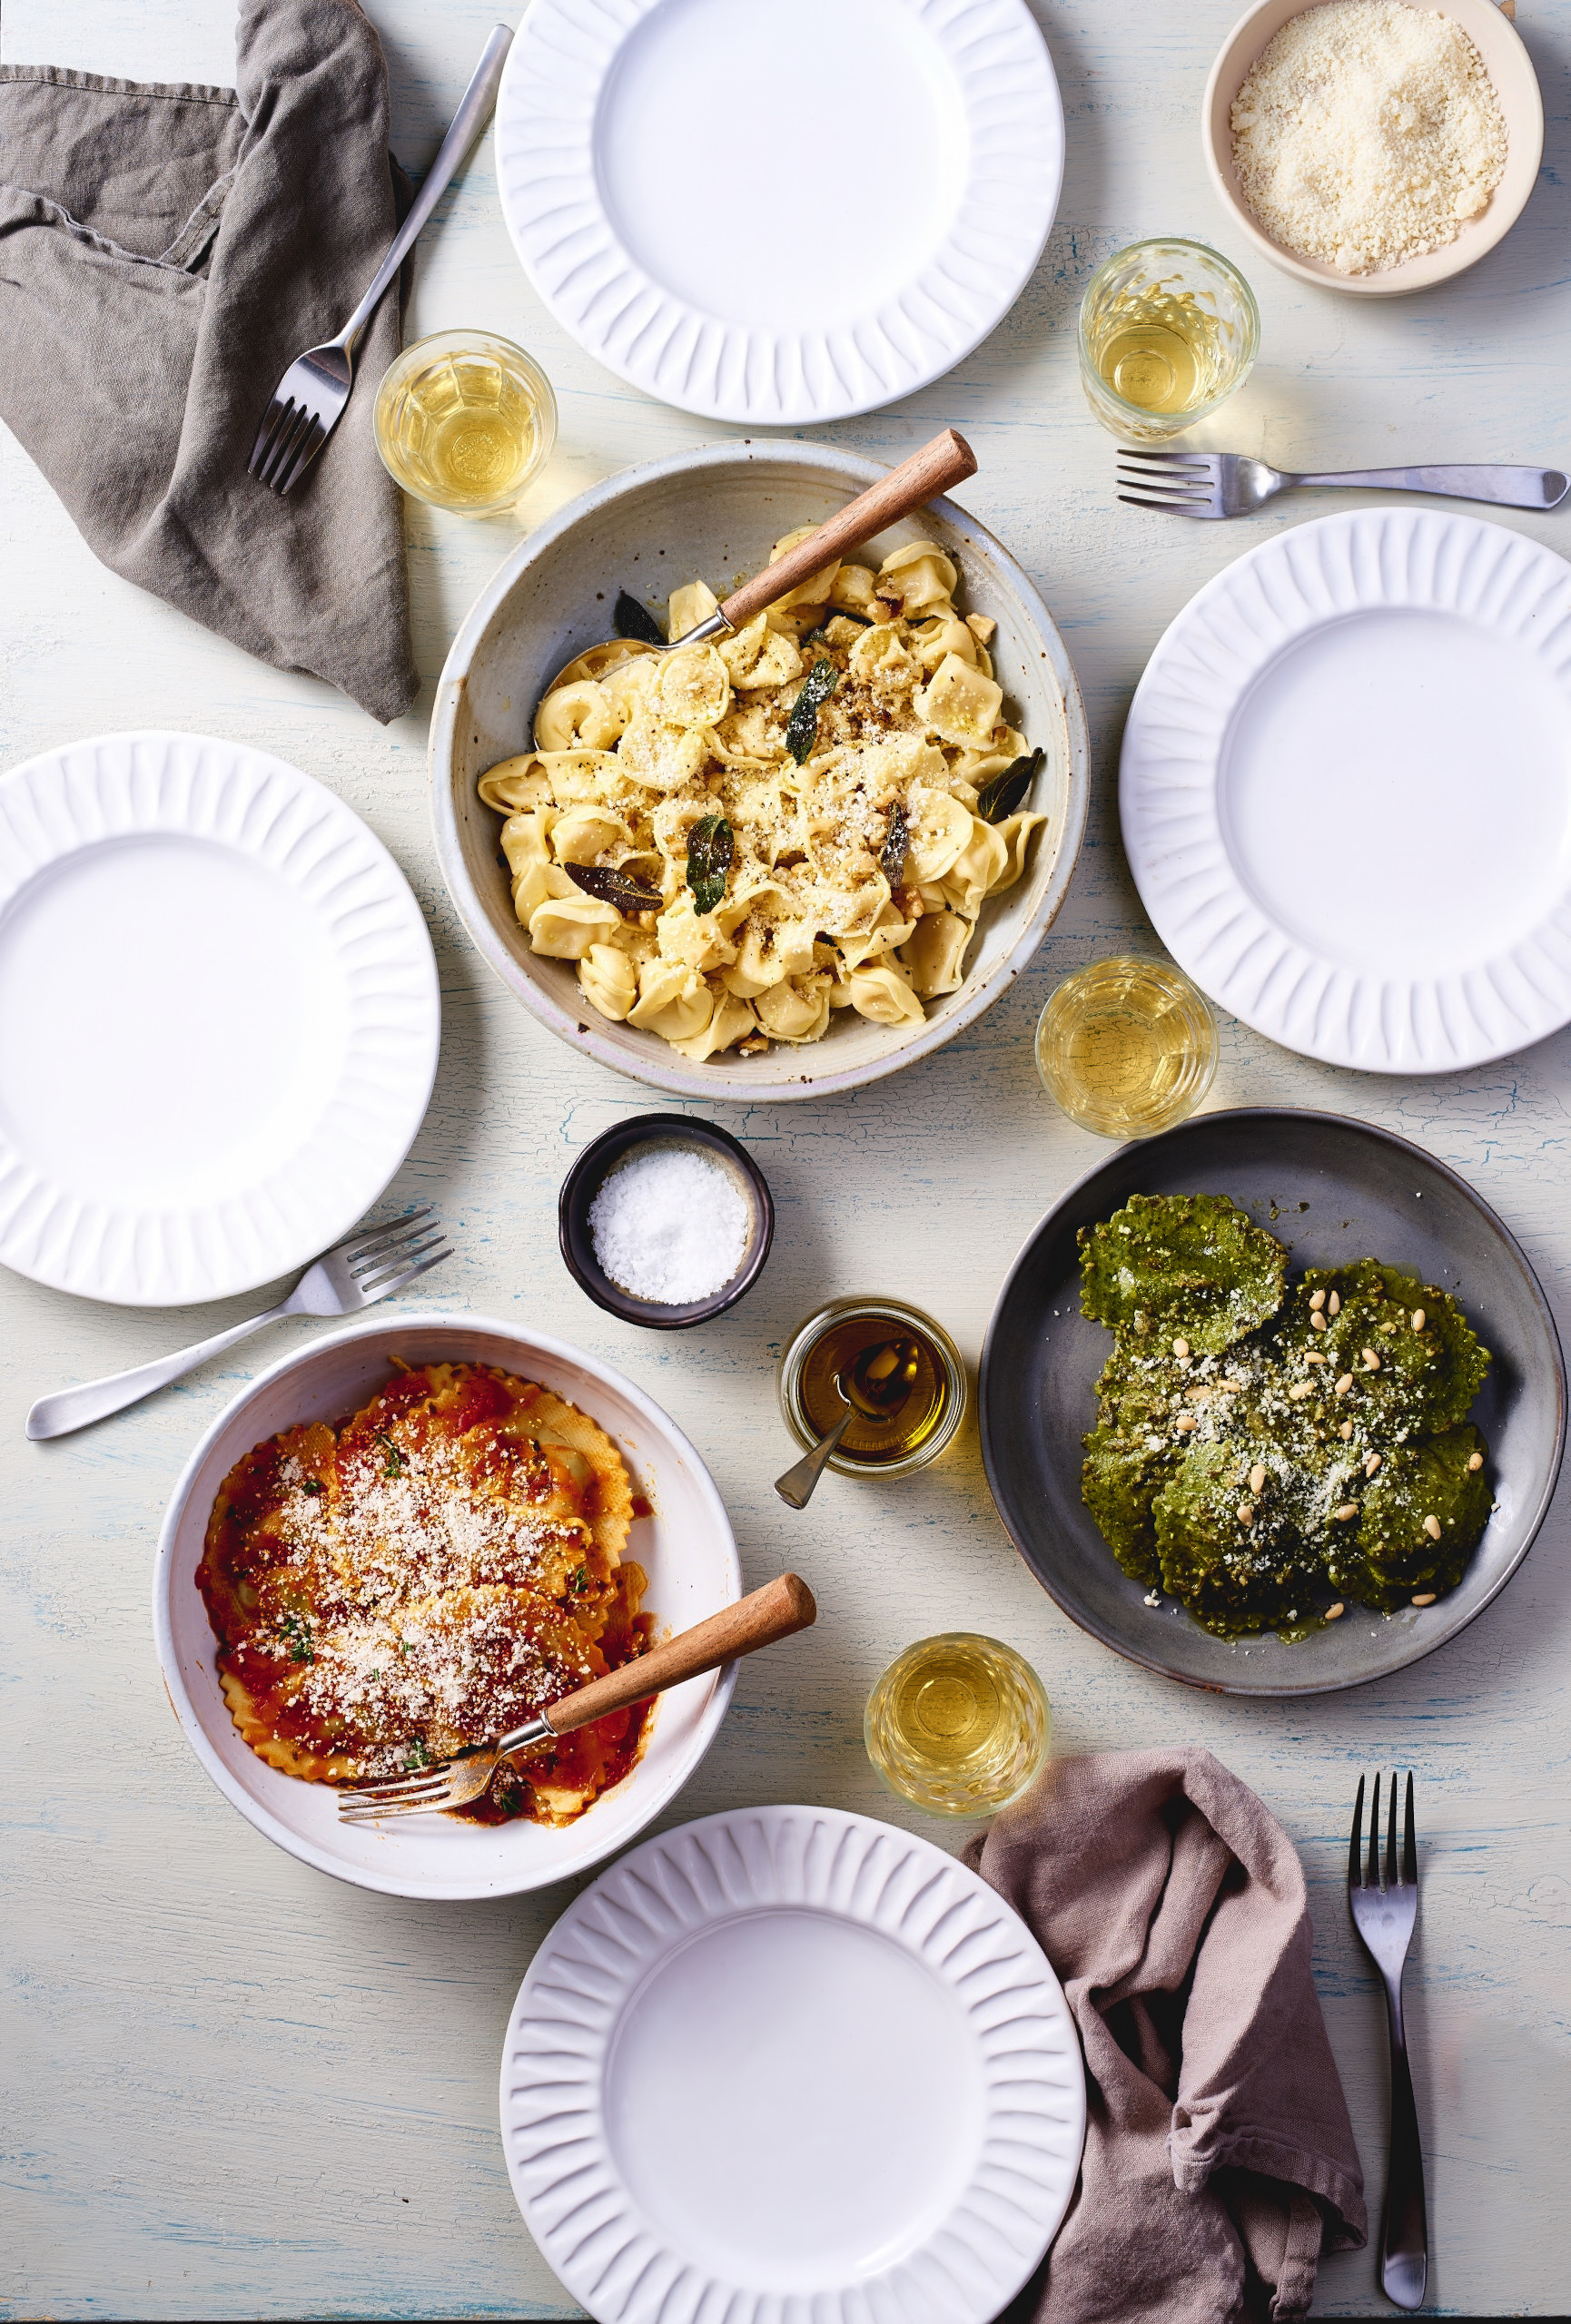 Dinner Time with Buitoni Pasta